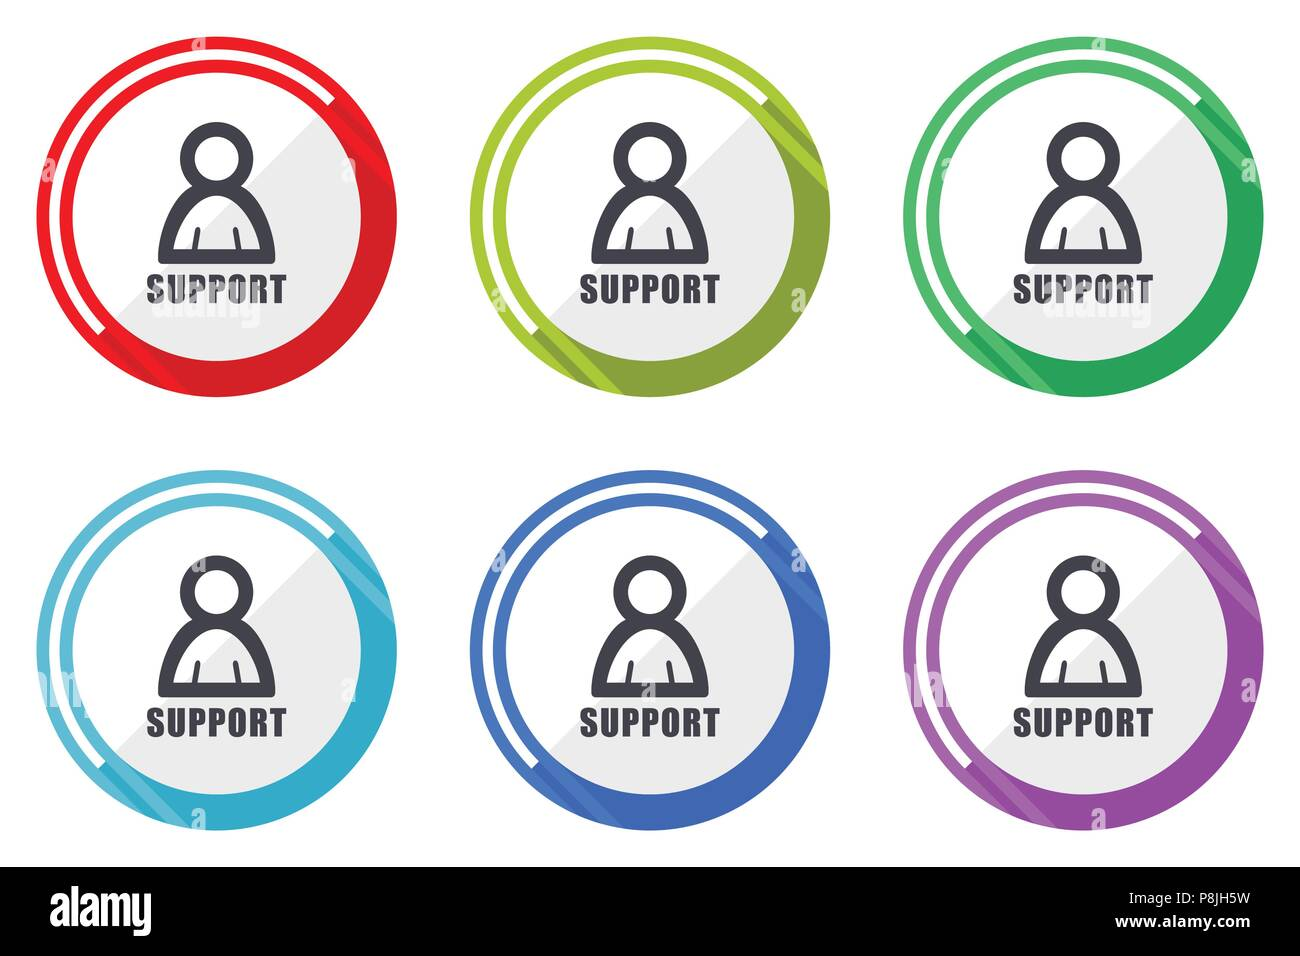 Support Vector Icons Set Of Colorful Flat Design Internet Symbols